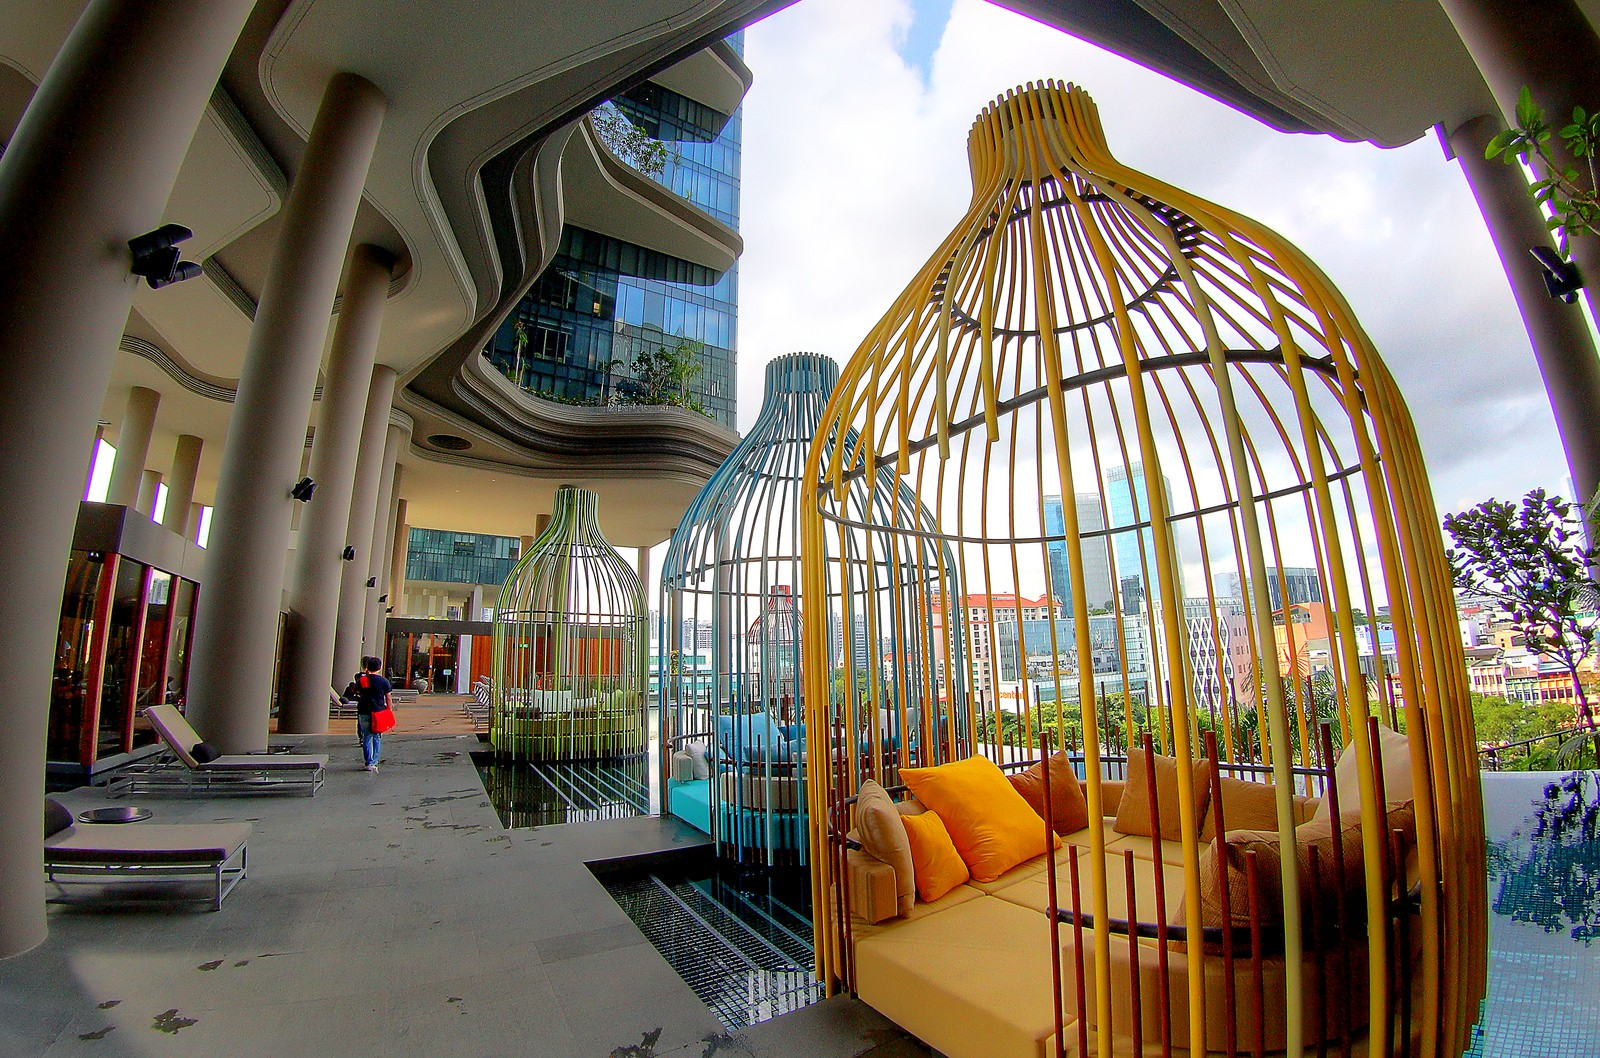 Colourful birdcage cabanas to lounge in by the infinity pool